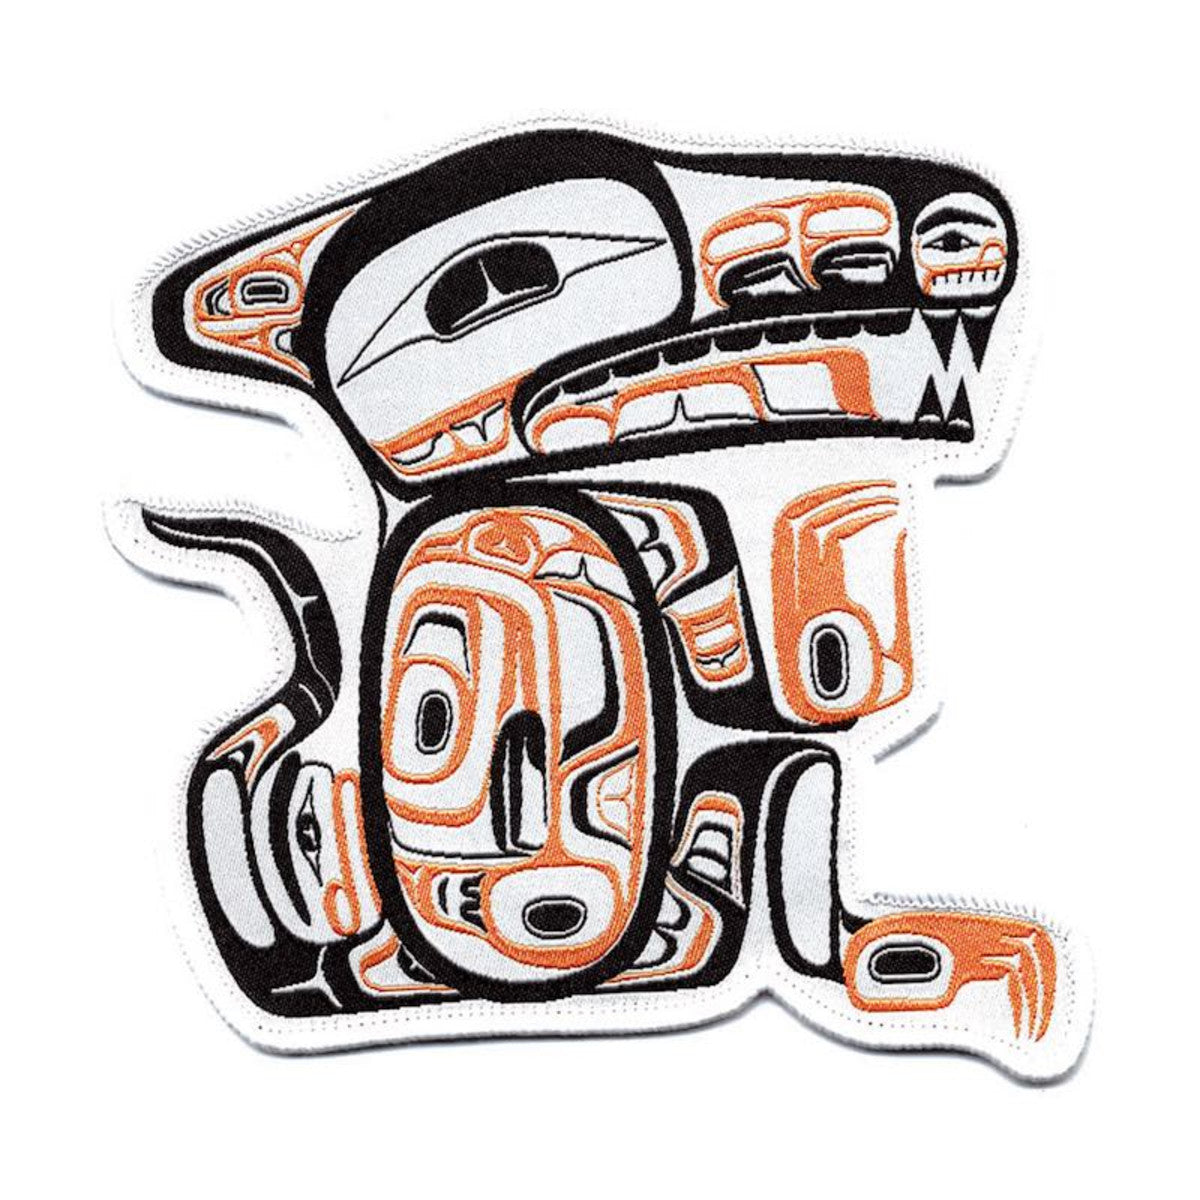 Large Embroidered Patch by Todd Stephens, Nisga'a